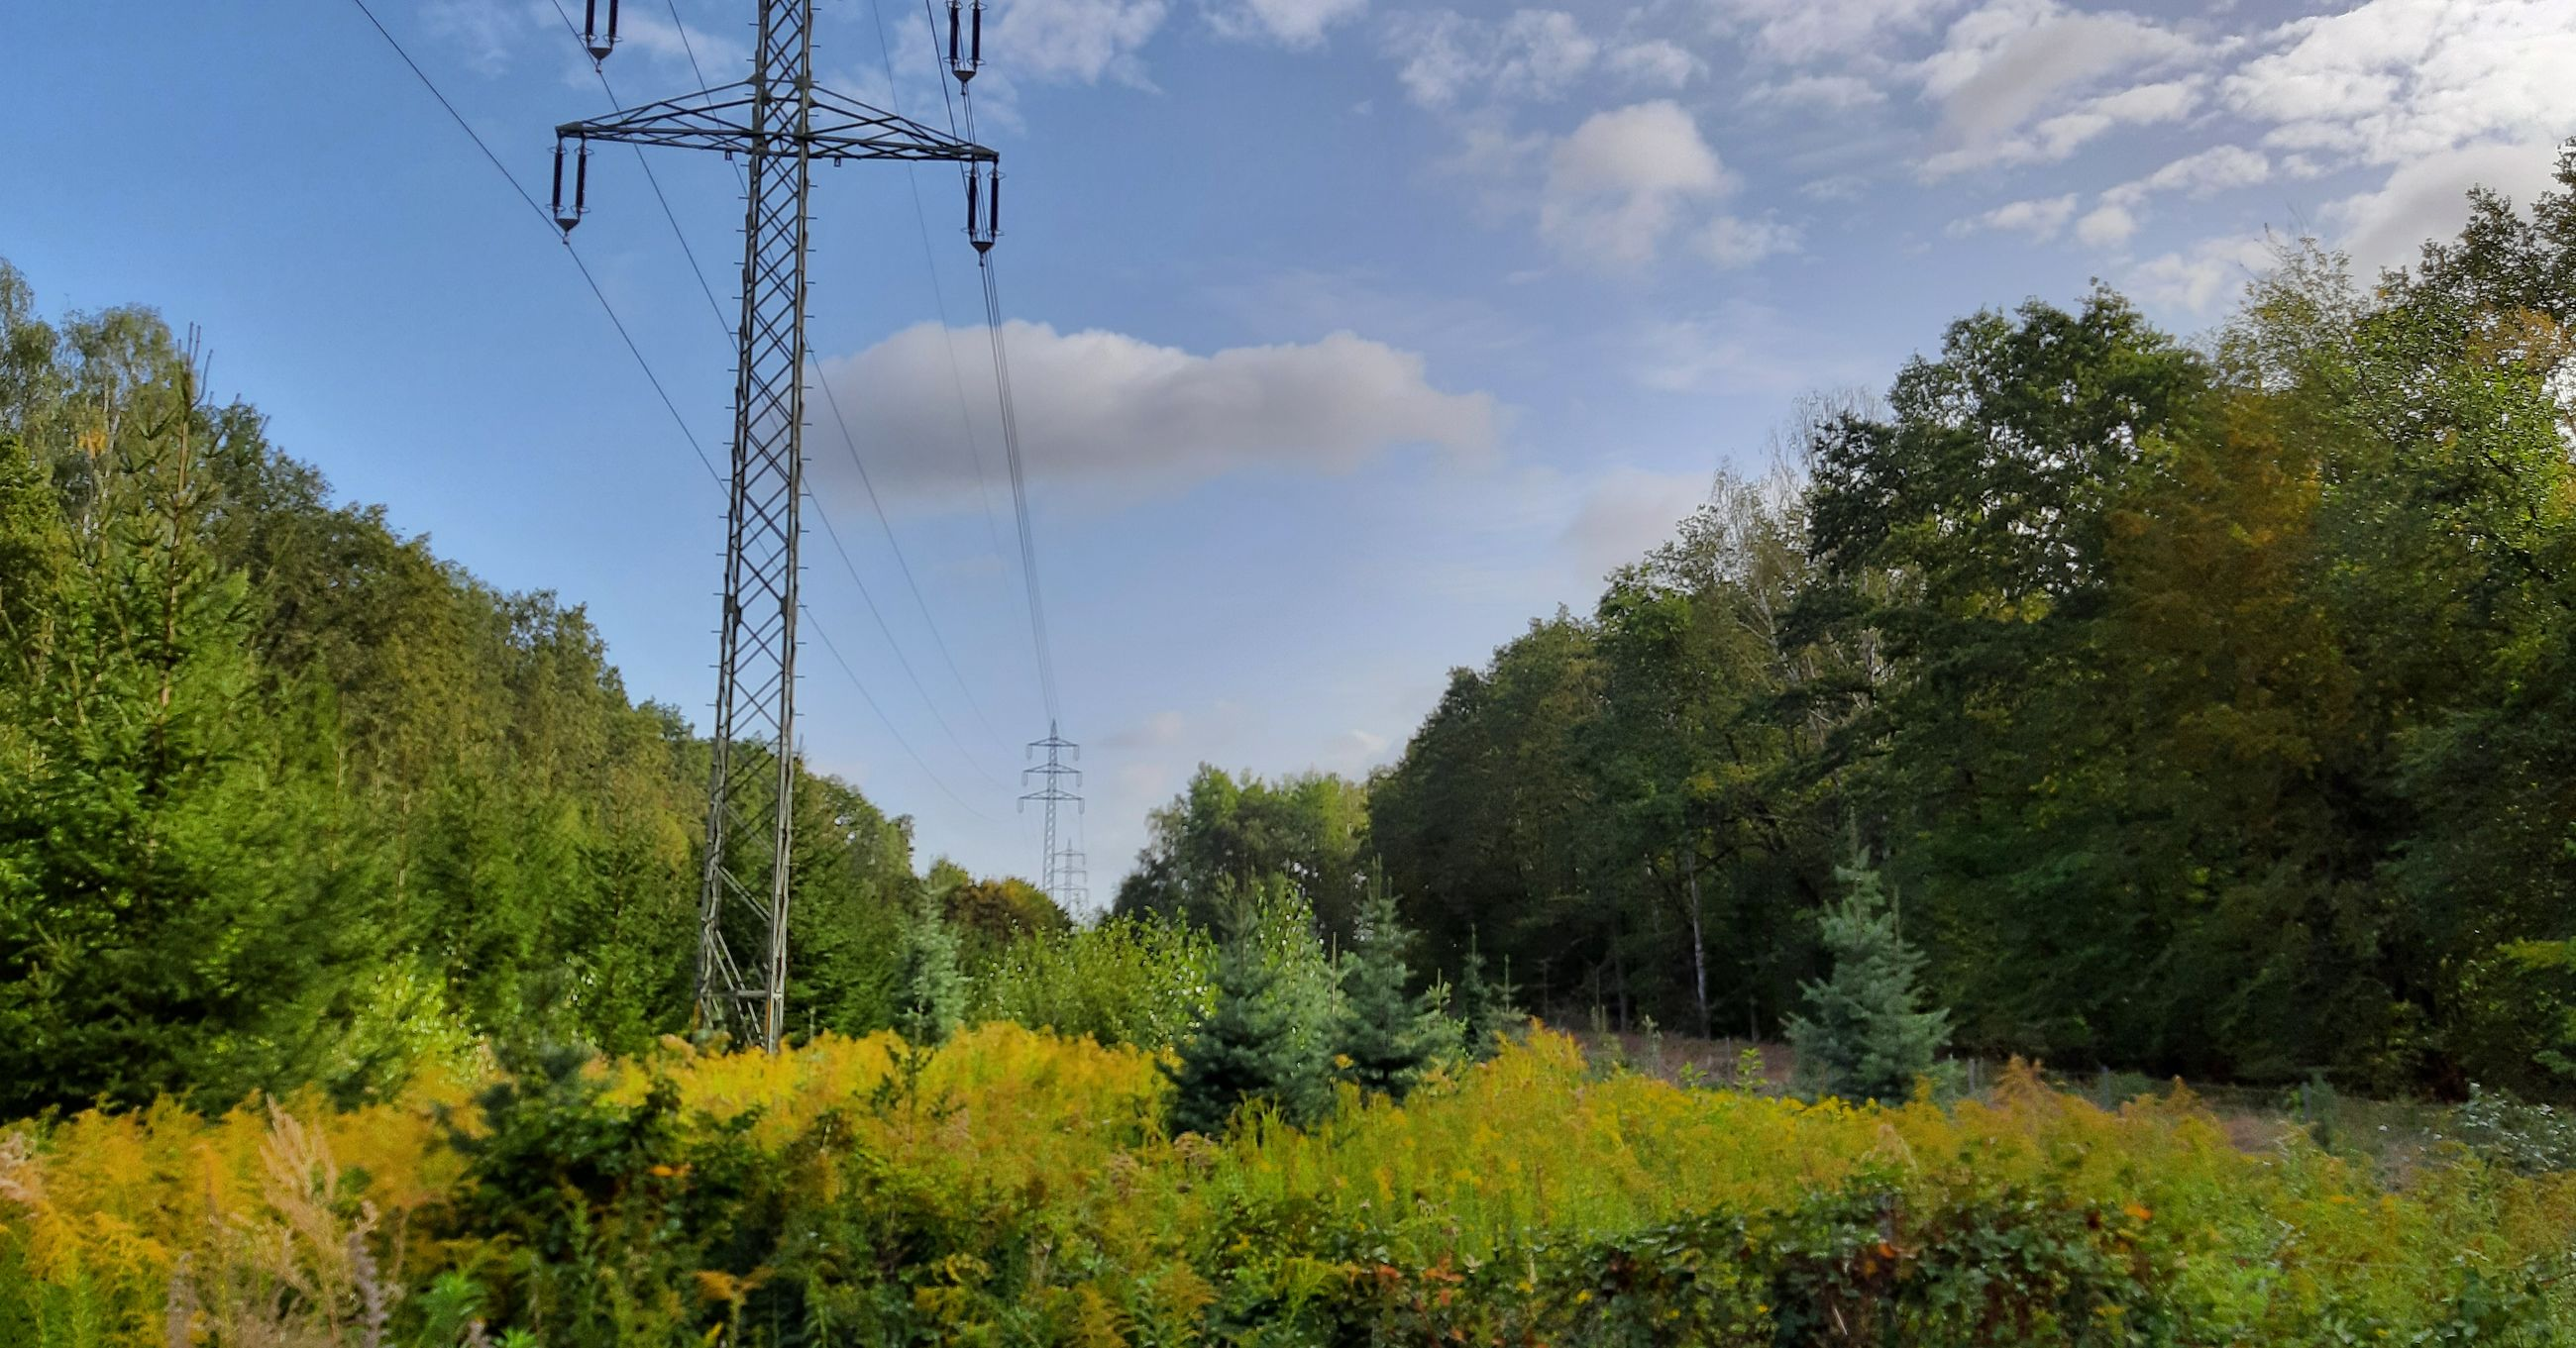 tree, plant, electricity, cable, electricity pylon, connection, technology, fuel and power generation, sky, power line, green color, no people, growth, power supply, nature, land, low angle view, day, beauty in nature, tranquil scene, outdoors, electrical equipment